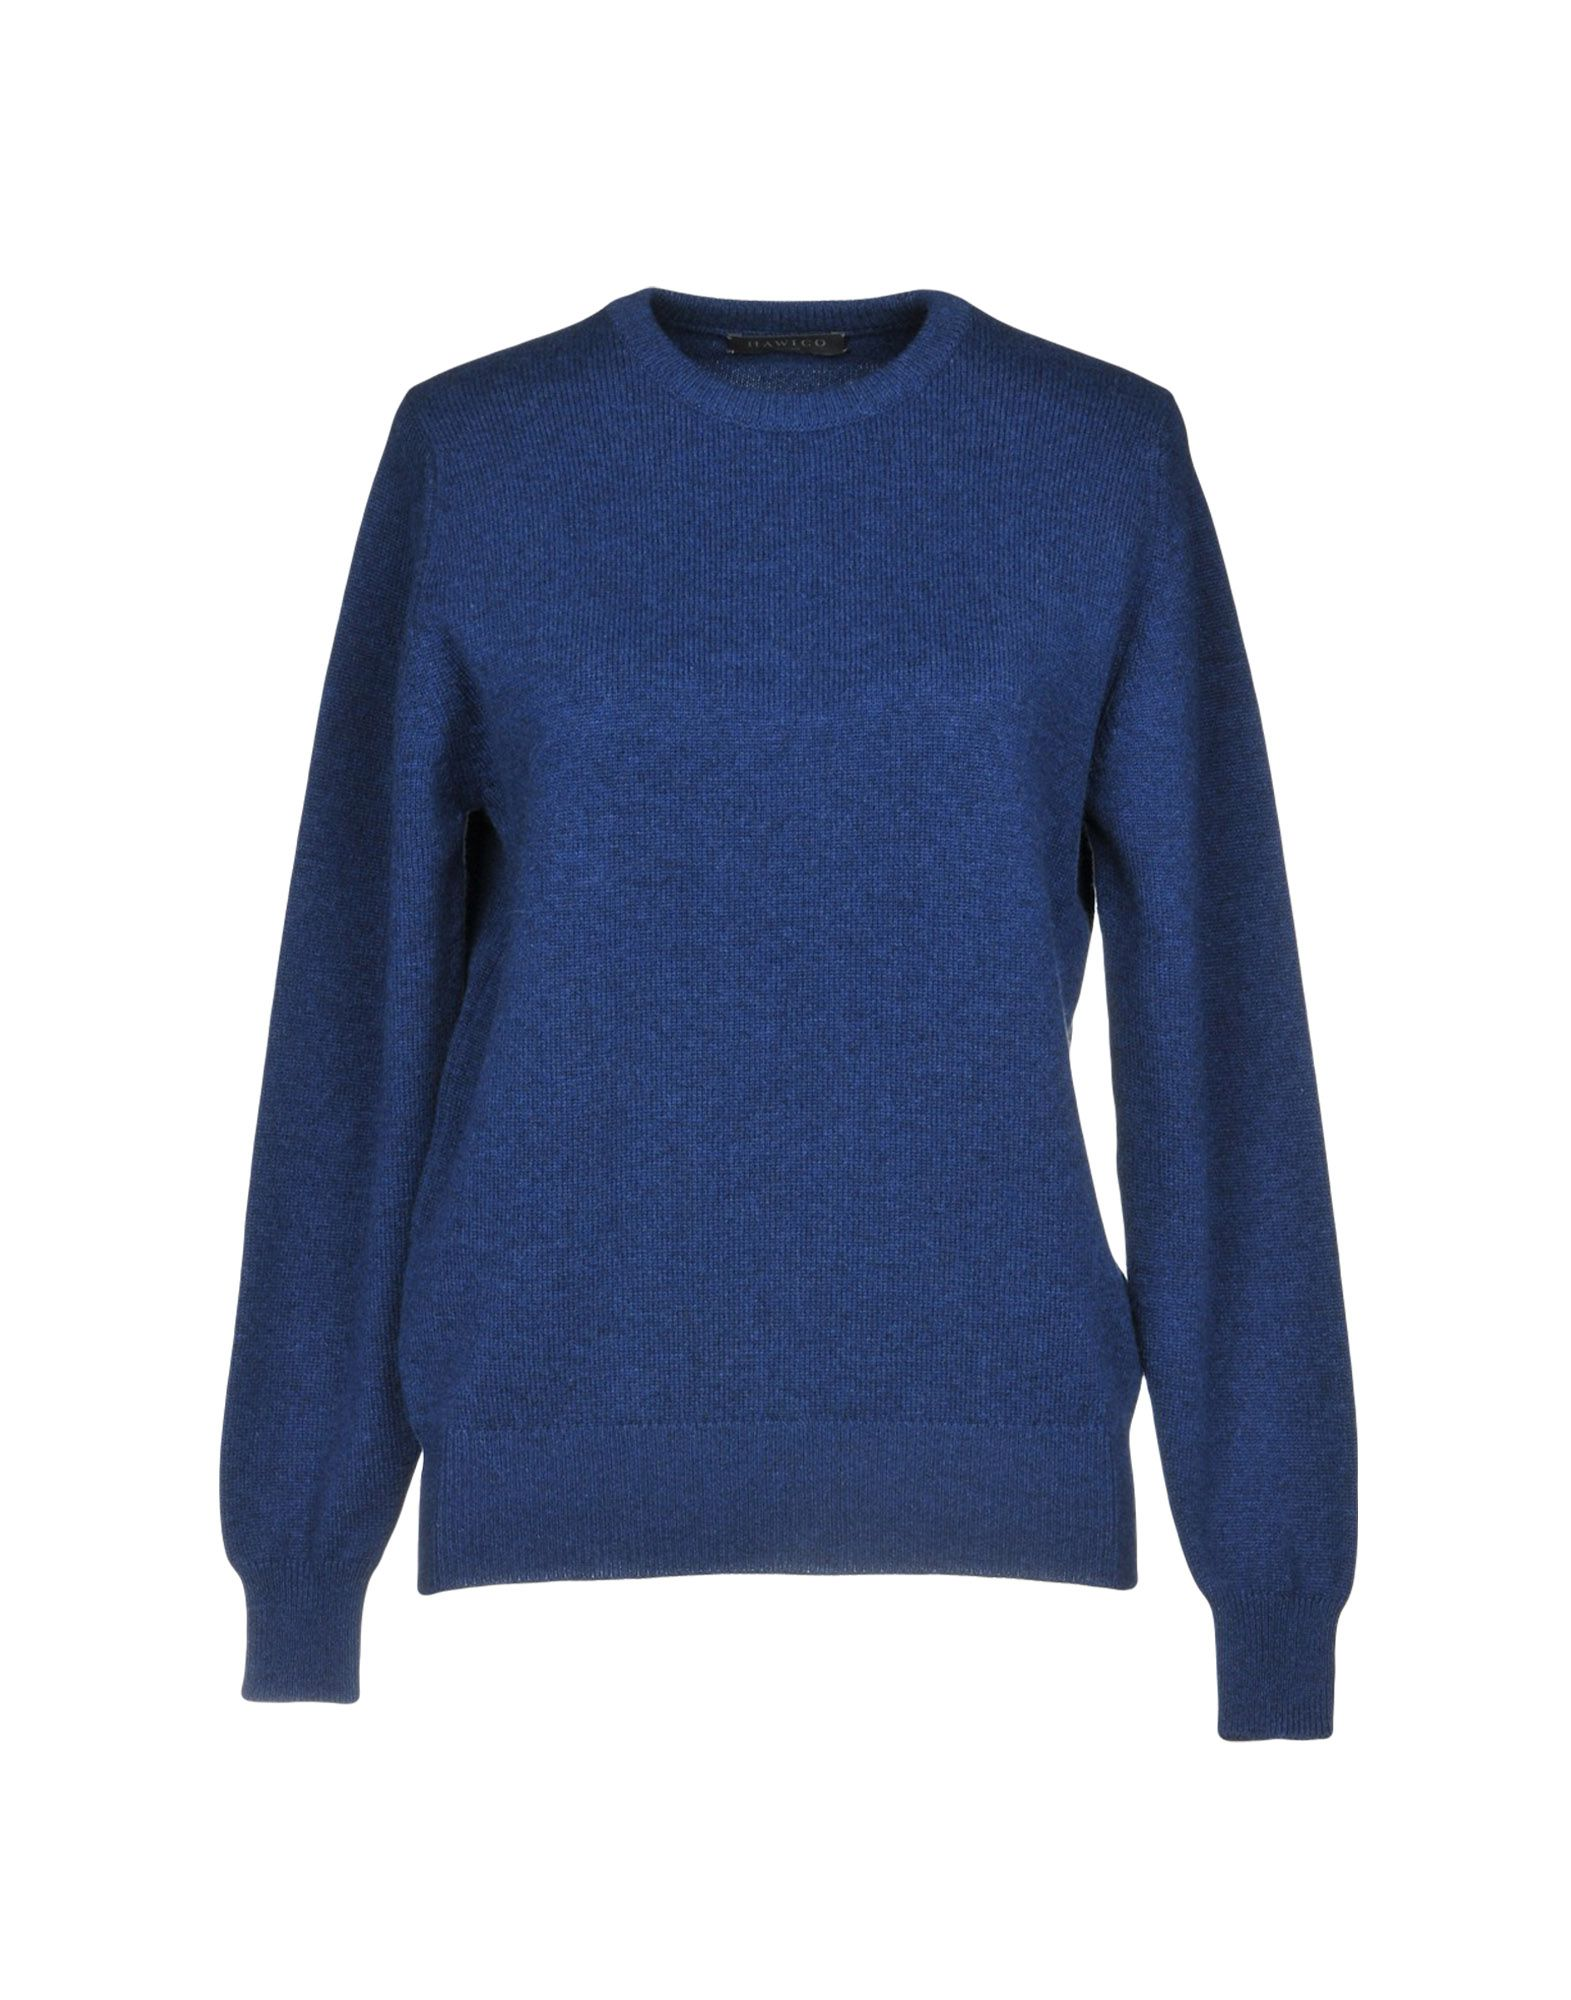 HAWICO Cashmere Blend in Blue